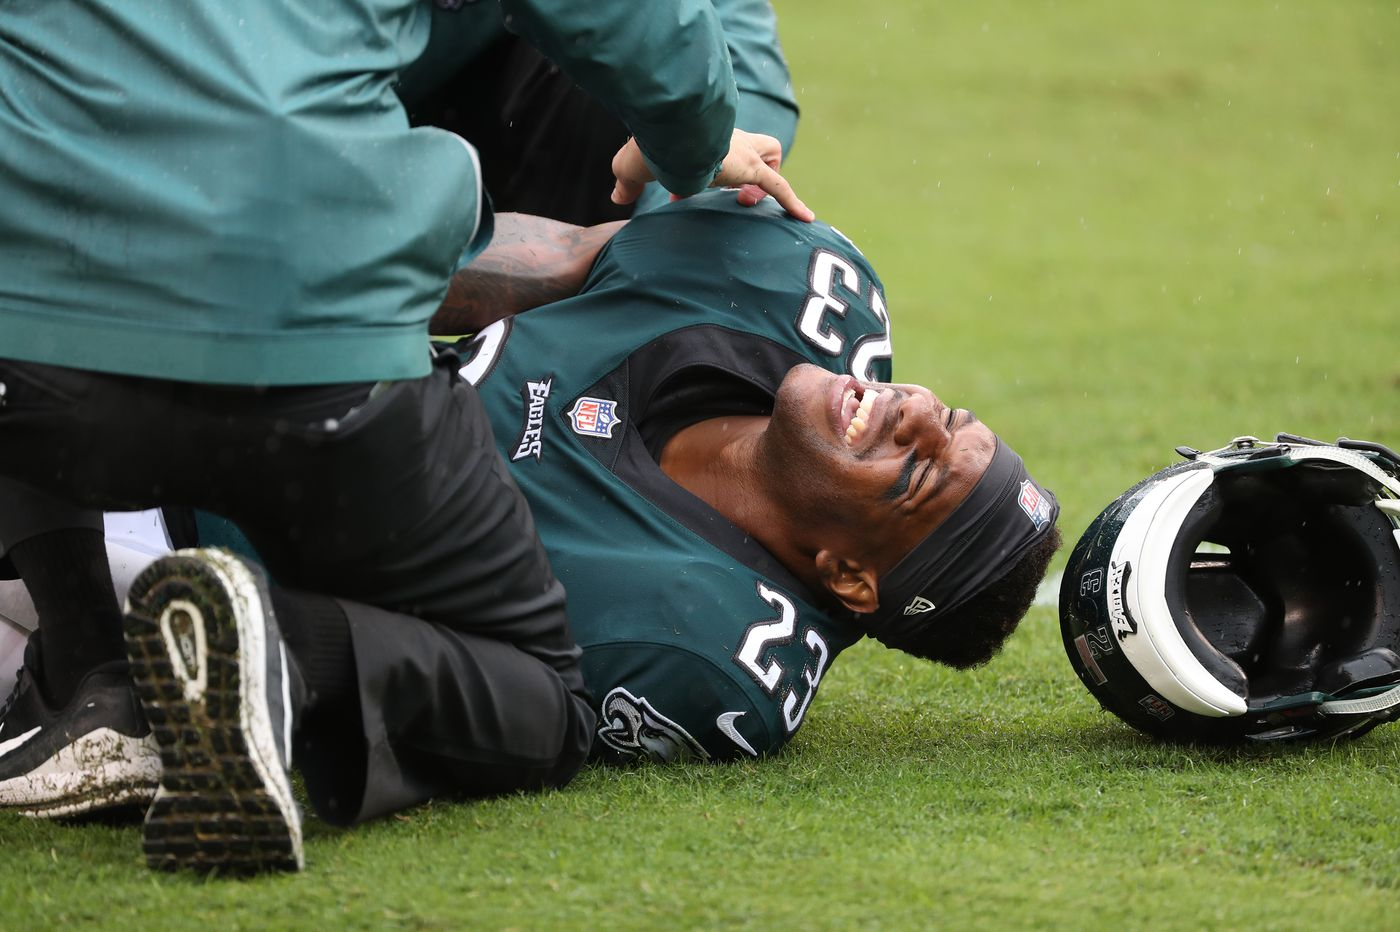 Eagles' Rodney McLeod says he's on track to be ready for season following ACL tear recovery